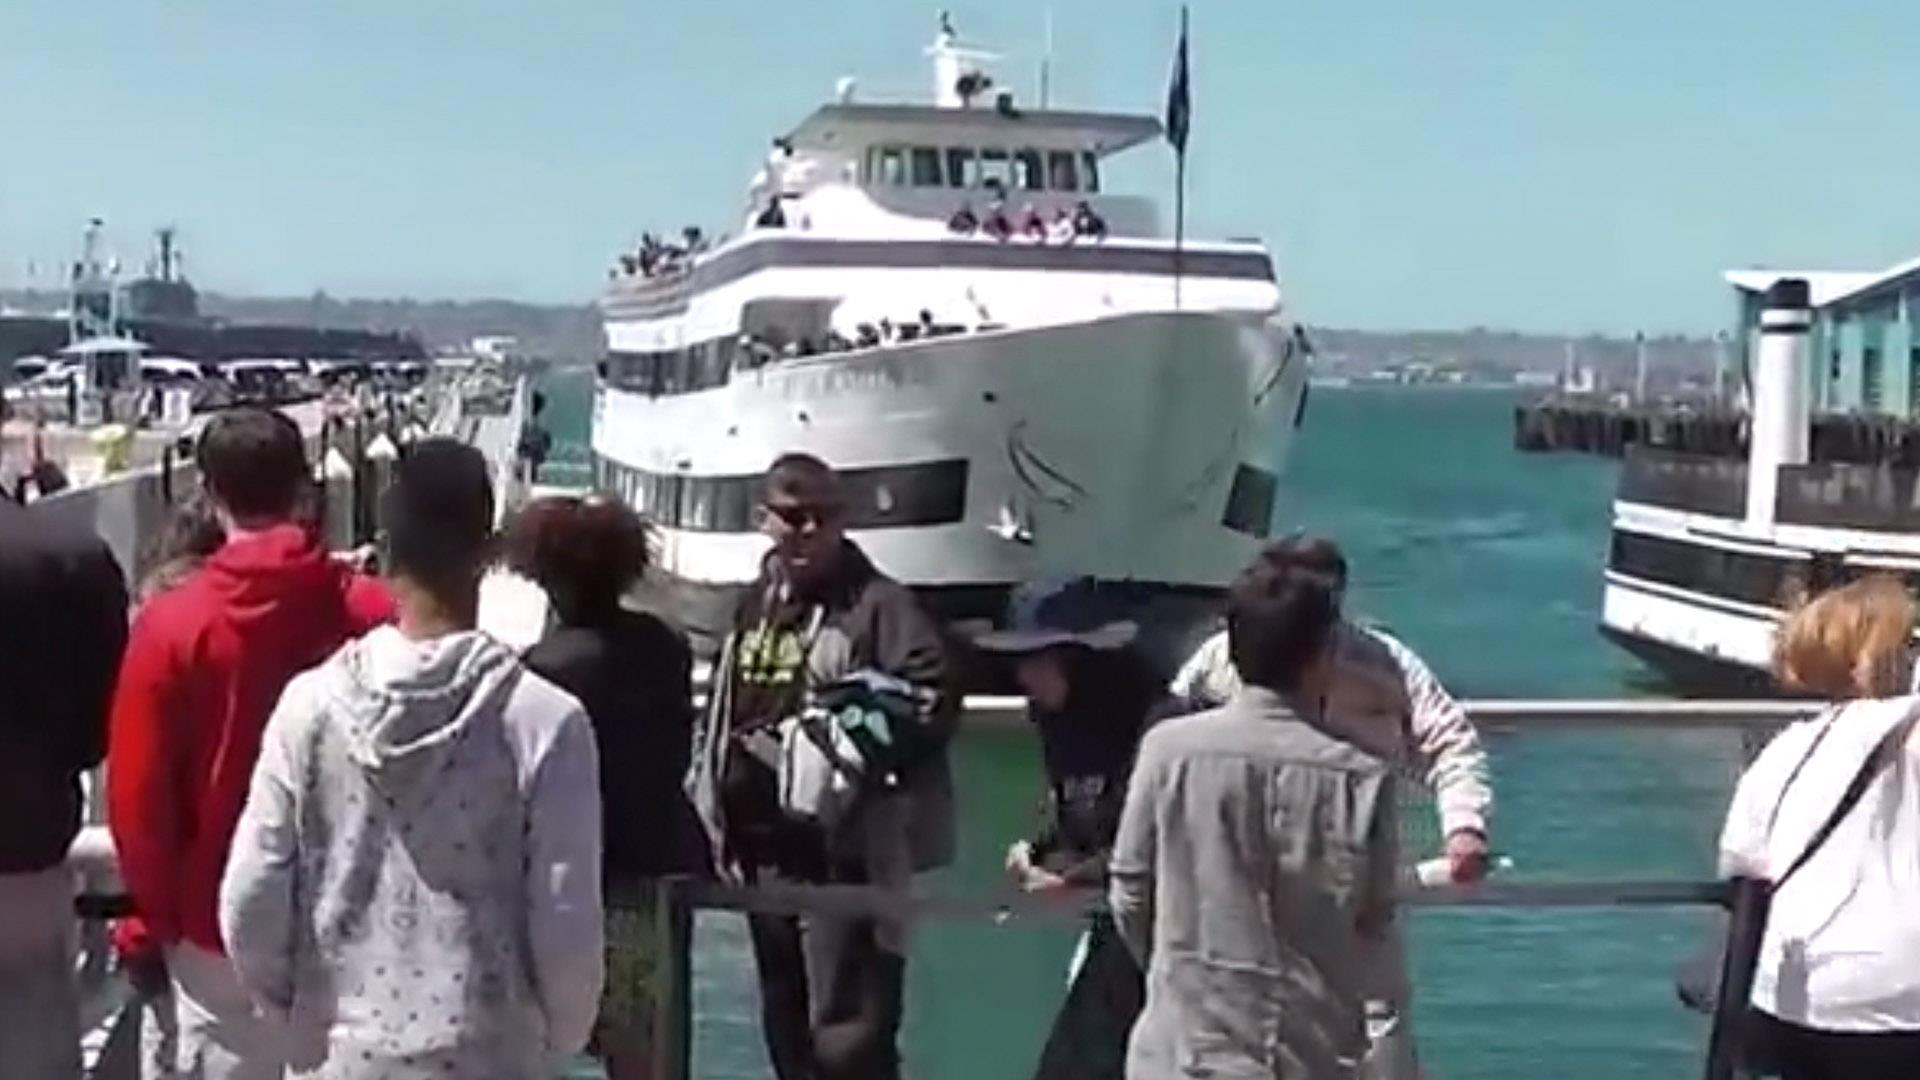 Tourists Flee as Cruise Ship Crashes Into Sea Wall